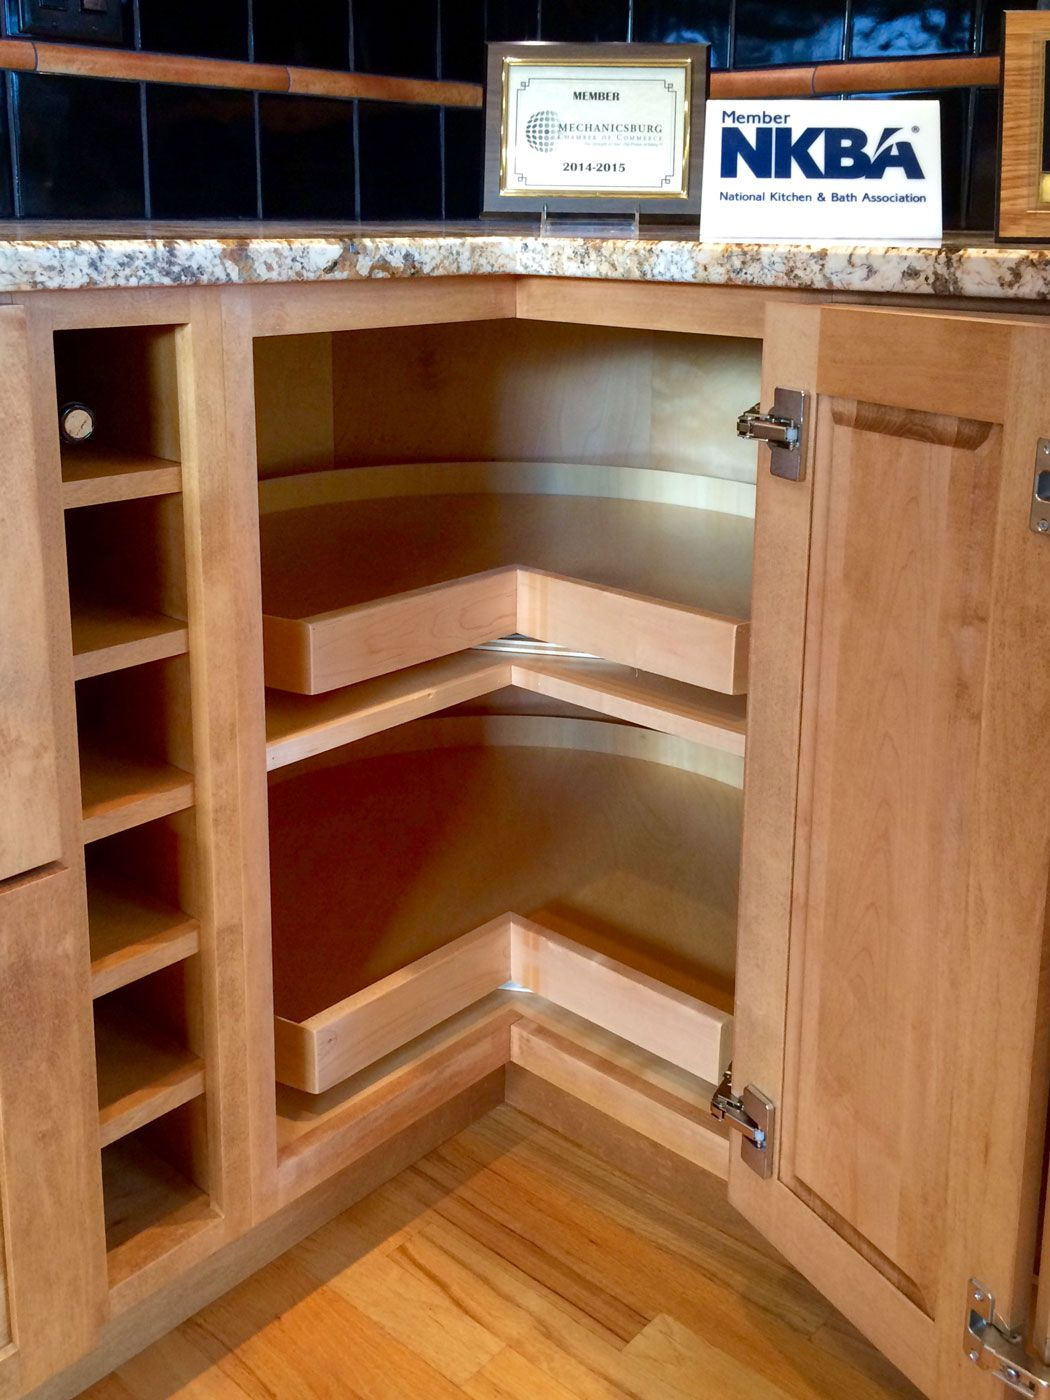 5 Solutions For Your Corner Cabinet Storage Needs. Mother Hubbardu0027s Custom Cabinetry explains what we do to solve the corner cabinet dilemma : corner cabinets kitchen - hauntedcathouse.org